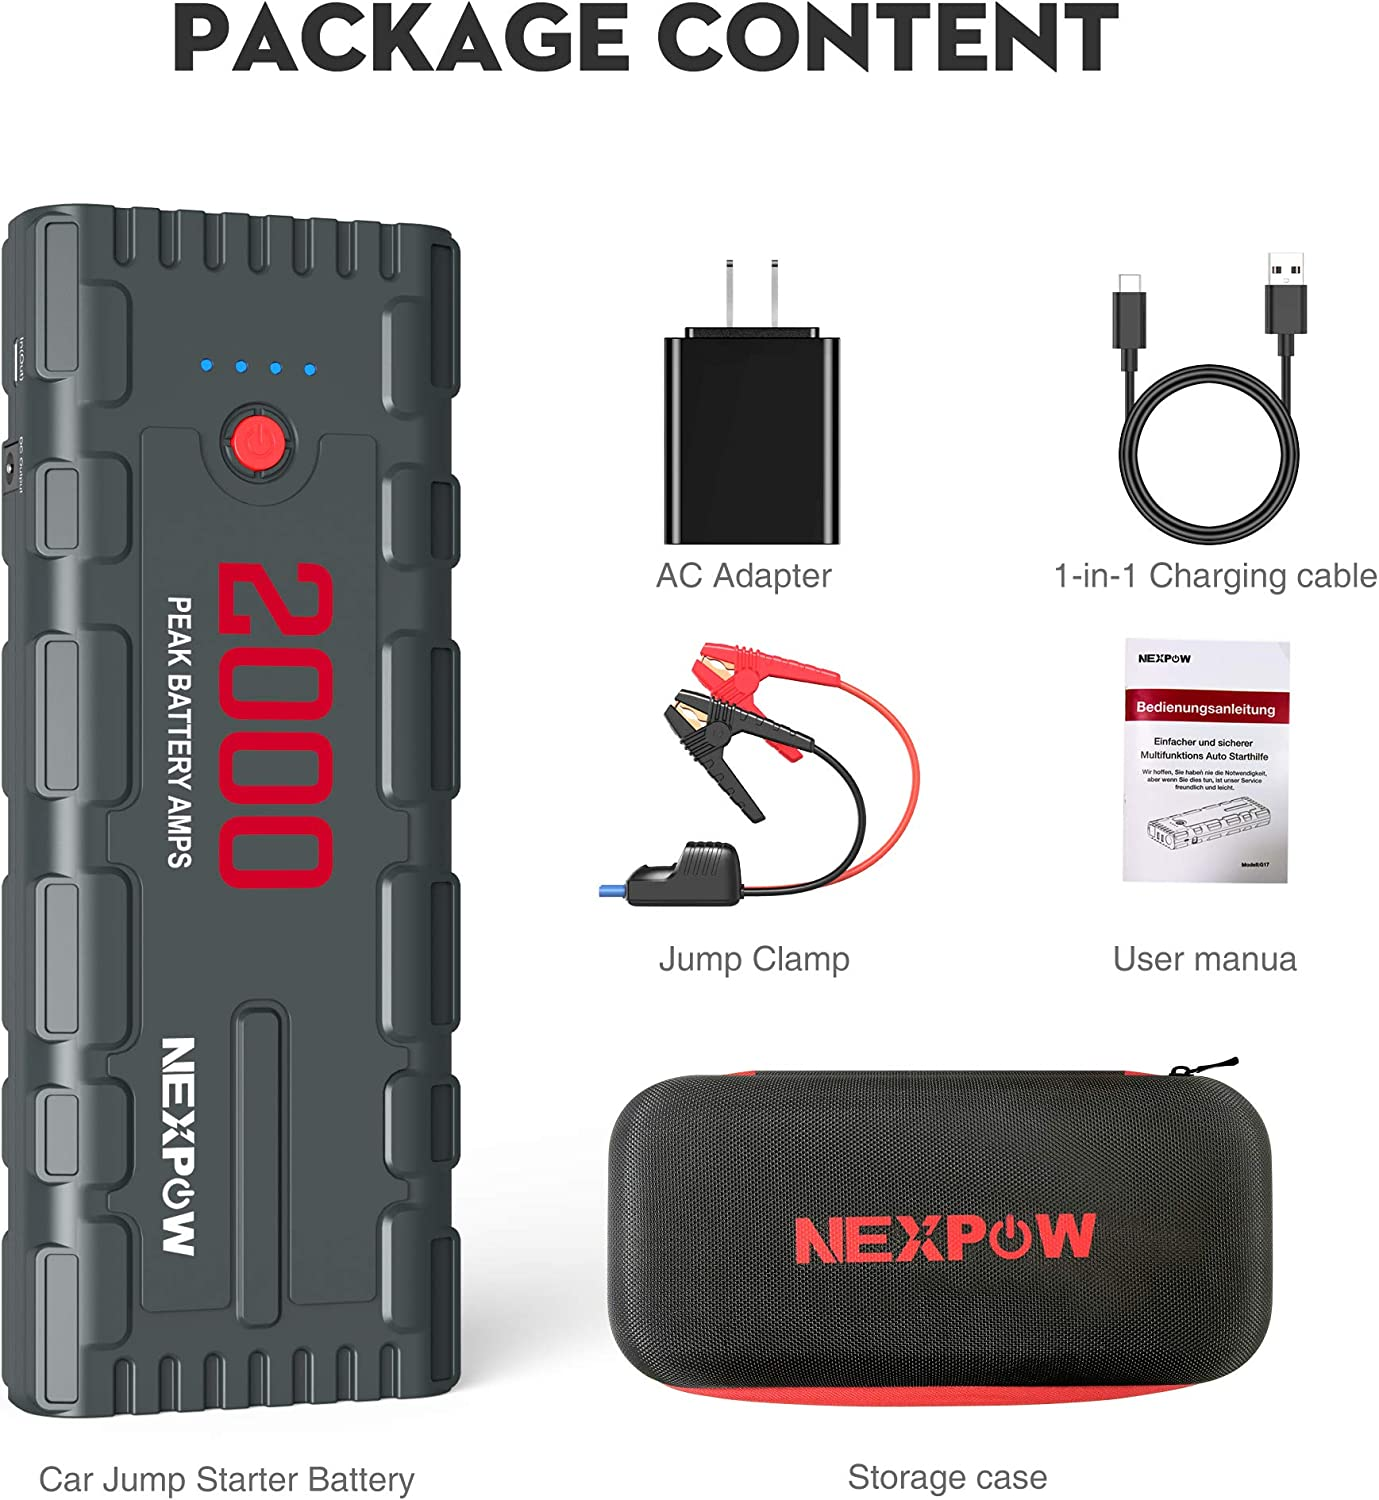 NEXPOW 2000A 18000mAh Car Jump Starter with USB Quick Charge 3.0 Up to 7.0L Gas or 6.5L Diesel Engine Battery Booster with Built-in LED Light 12V Portable Battery Starter